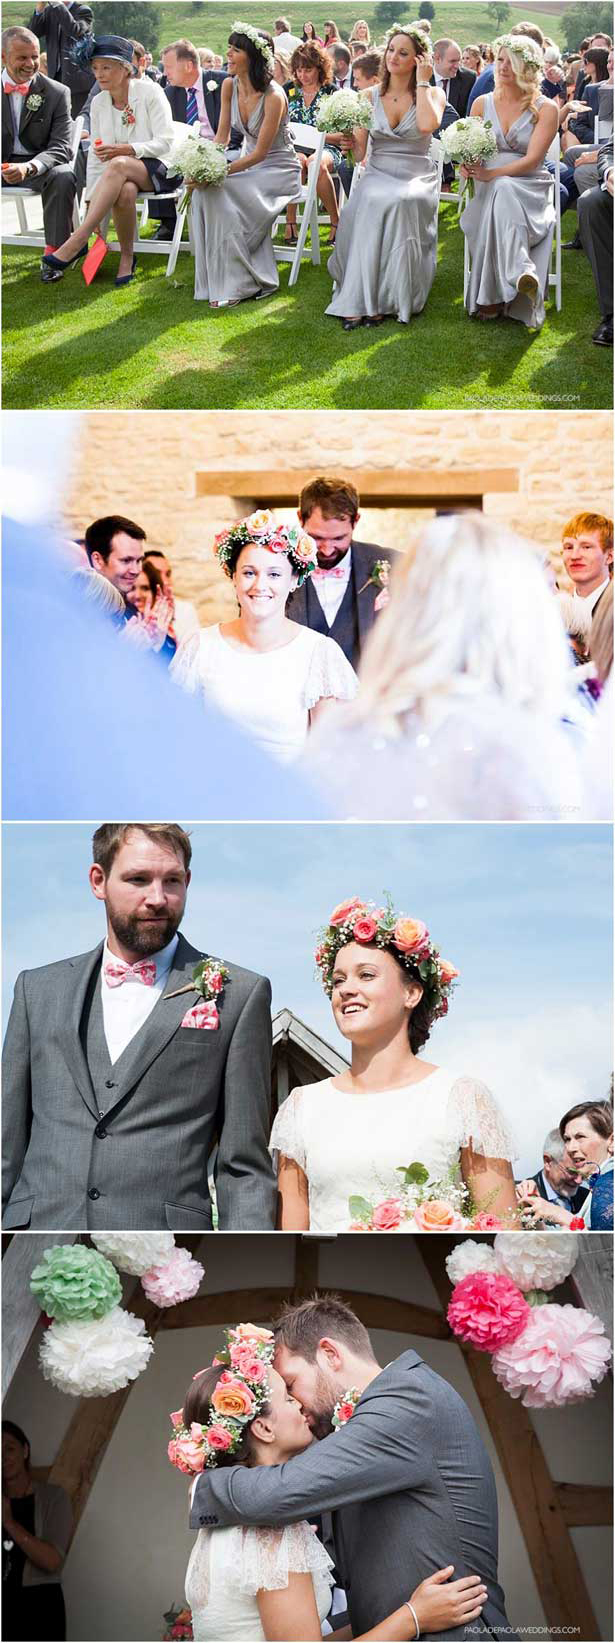 Boho out door wedding ceremony | Lauren and David's real wedding | Confetti.co.uk